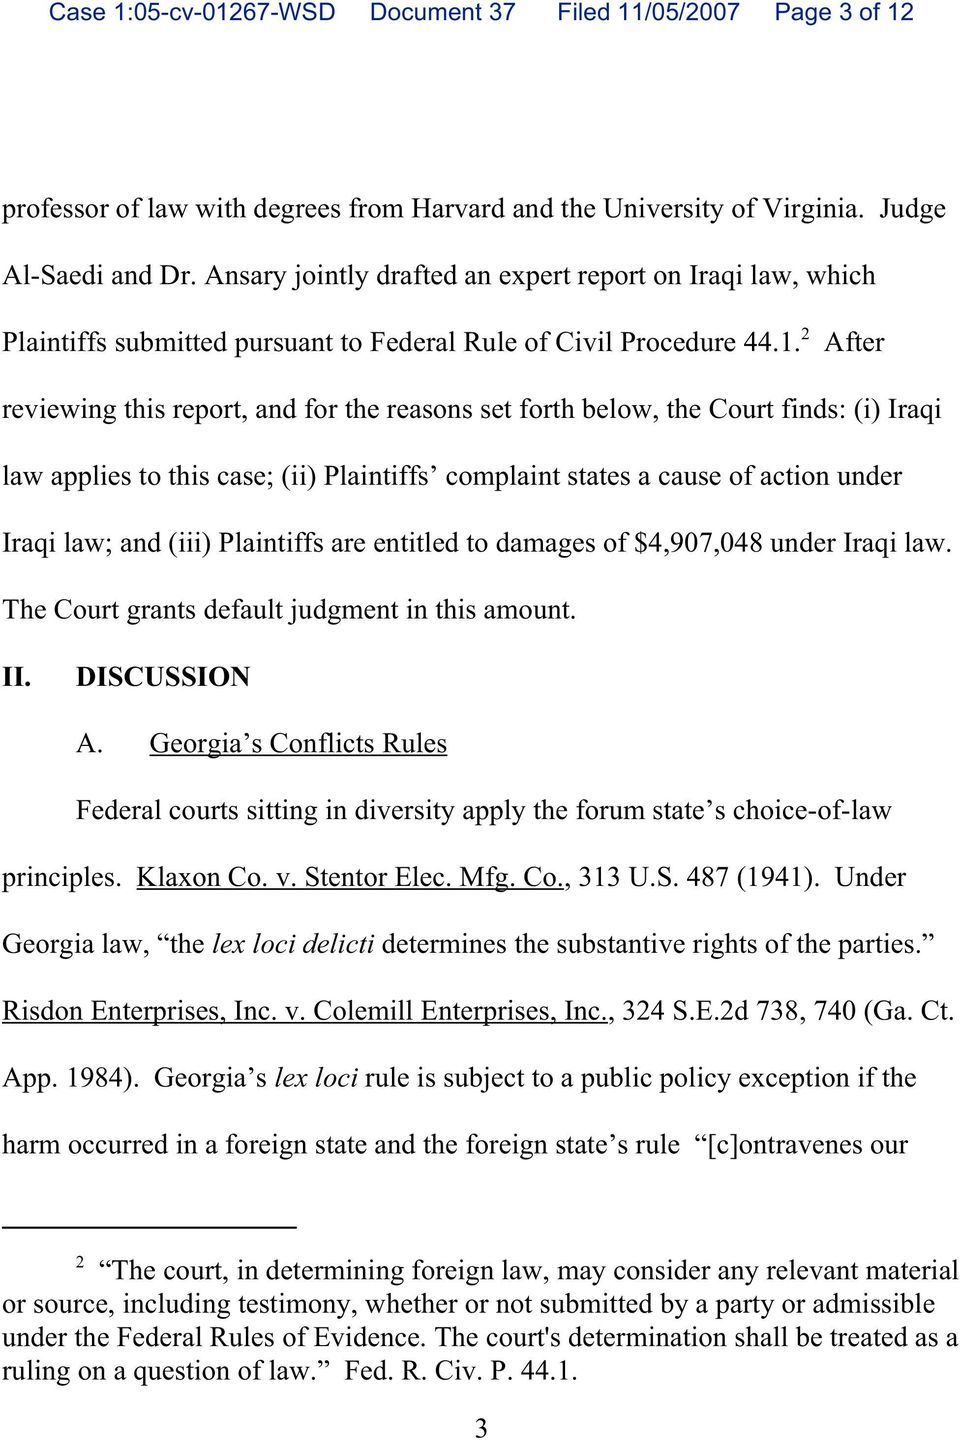 2 After reviewing this report, and for the reasons set forth below, the Court finds: (i) Iraqi law applies to this case; (ii) Plaintiffs complaint states a cause of action under Iraqi law; and (iii)